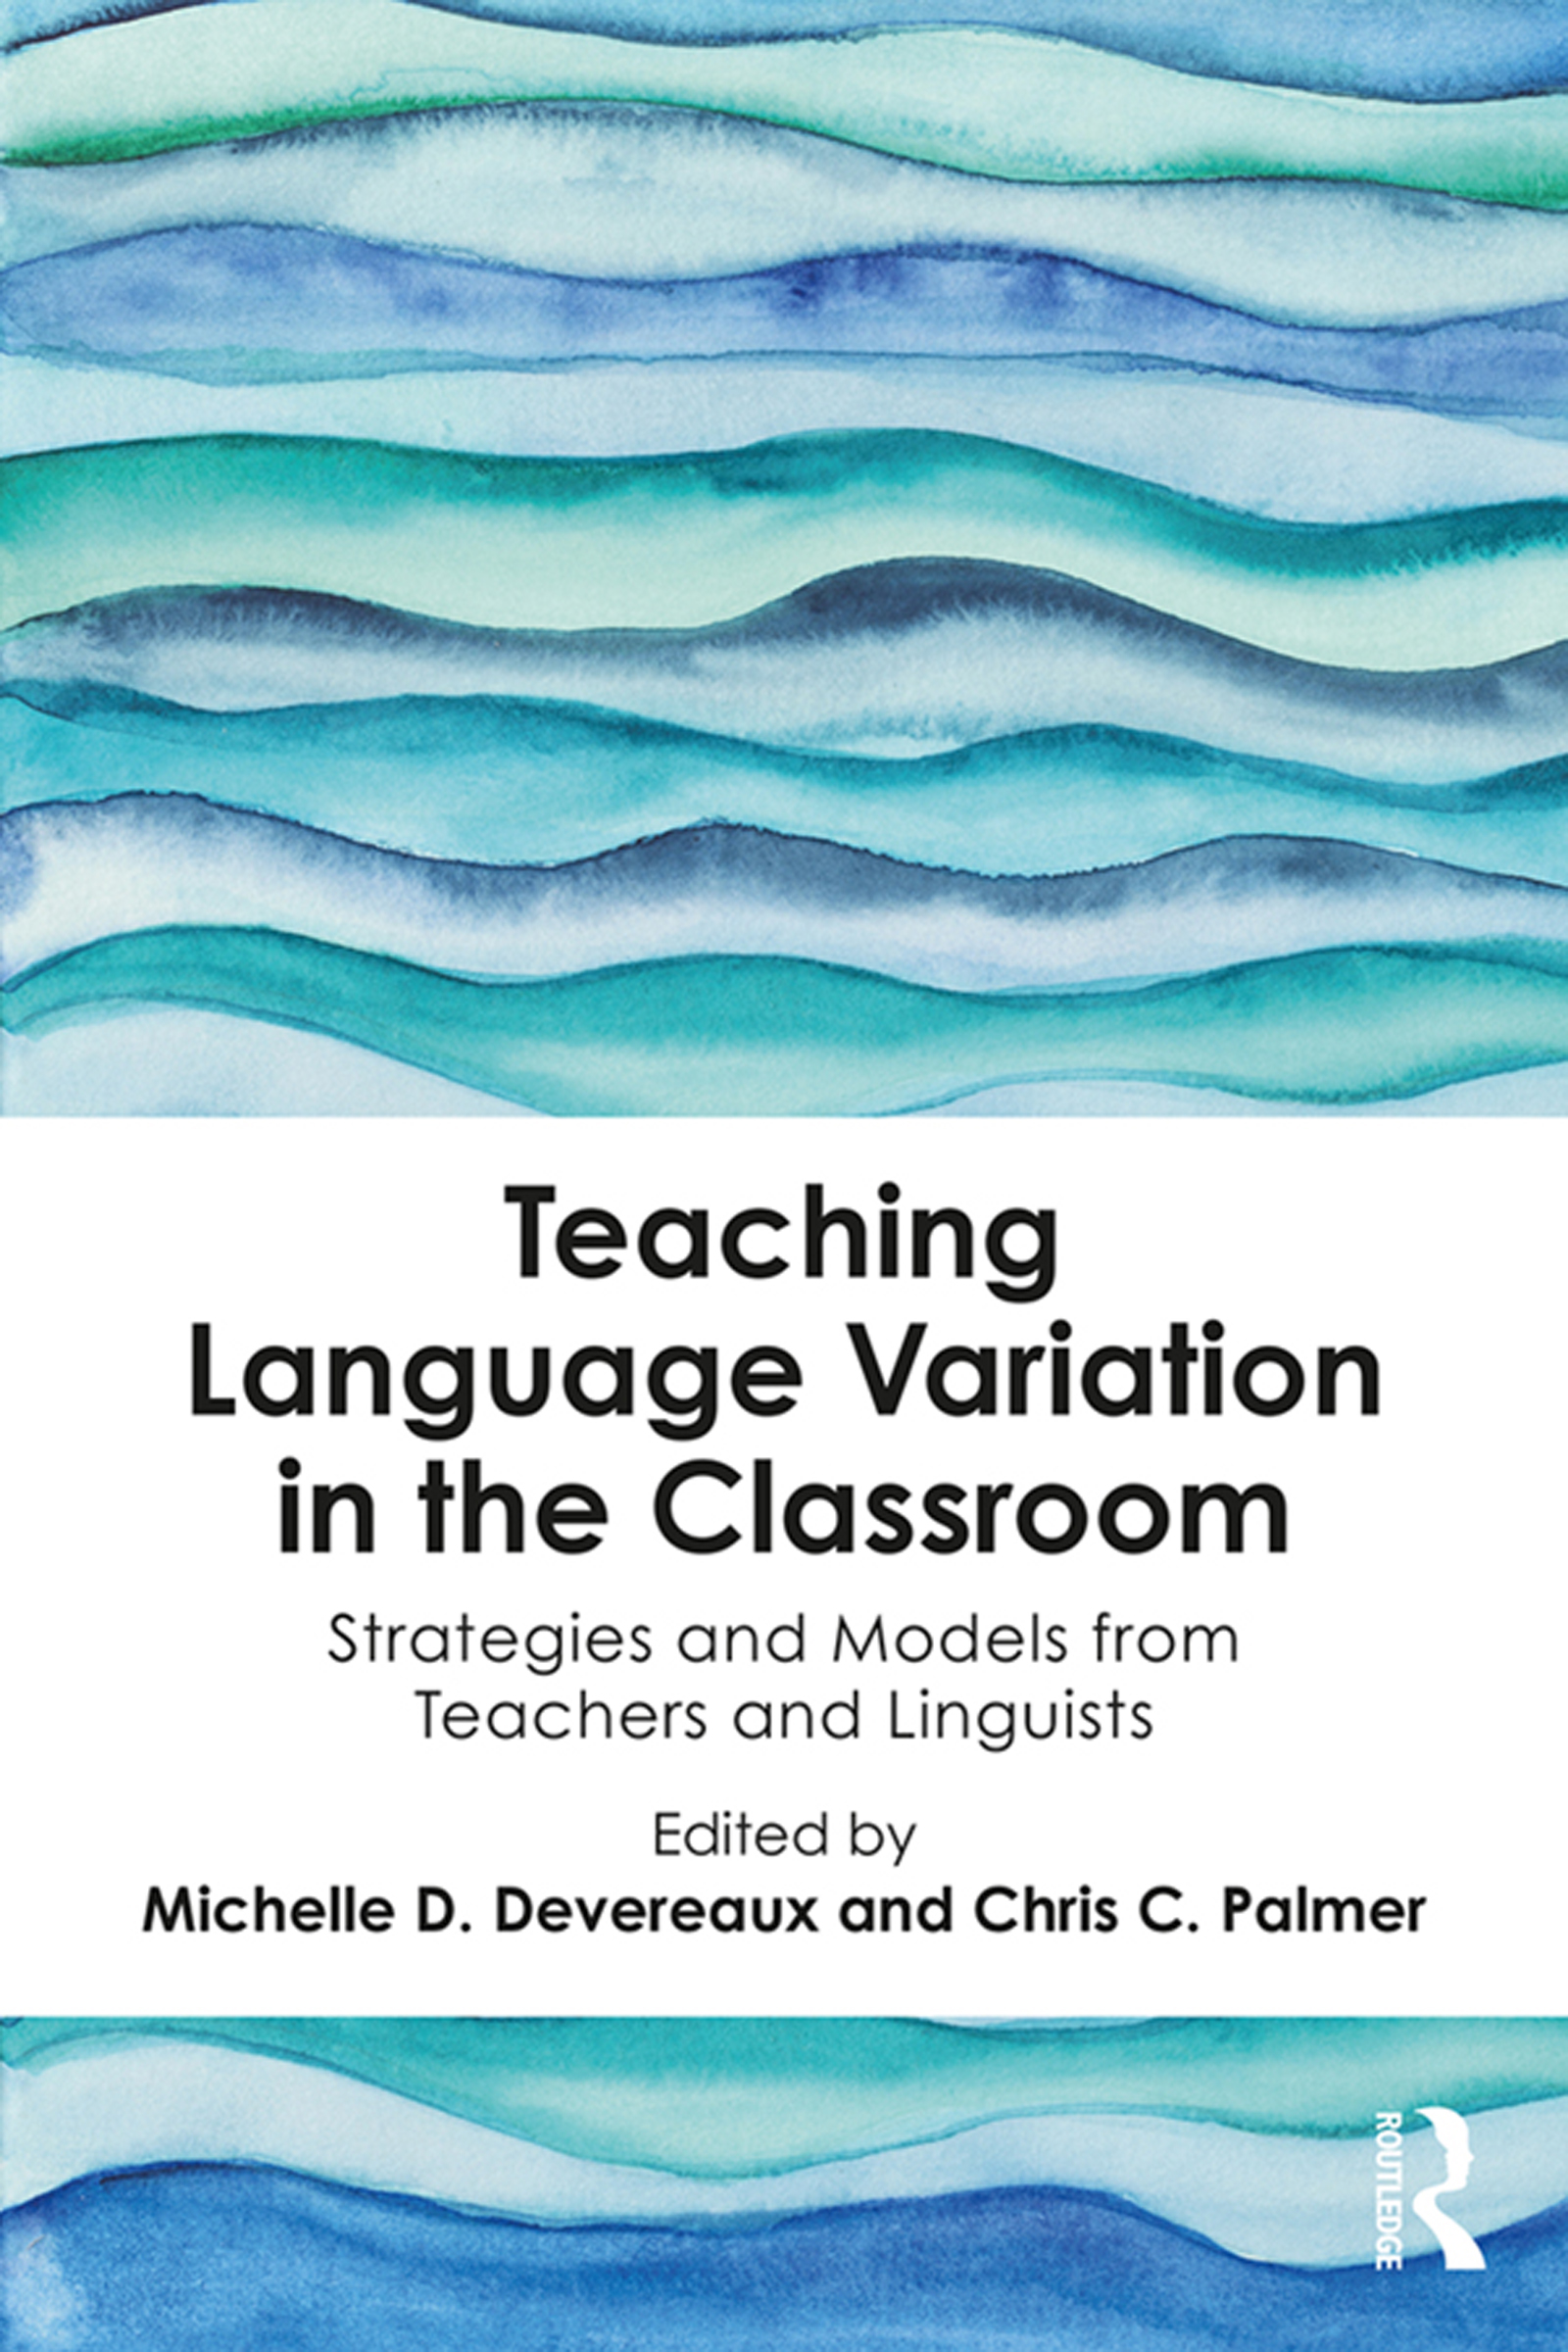 Teaching Language Variation in the Classroom: Strategies and Models from Teachers and Linguists, 1st Edition (Paperback) book cover